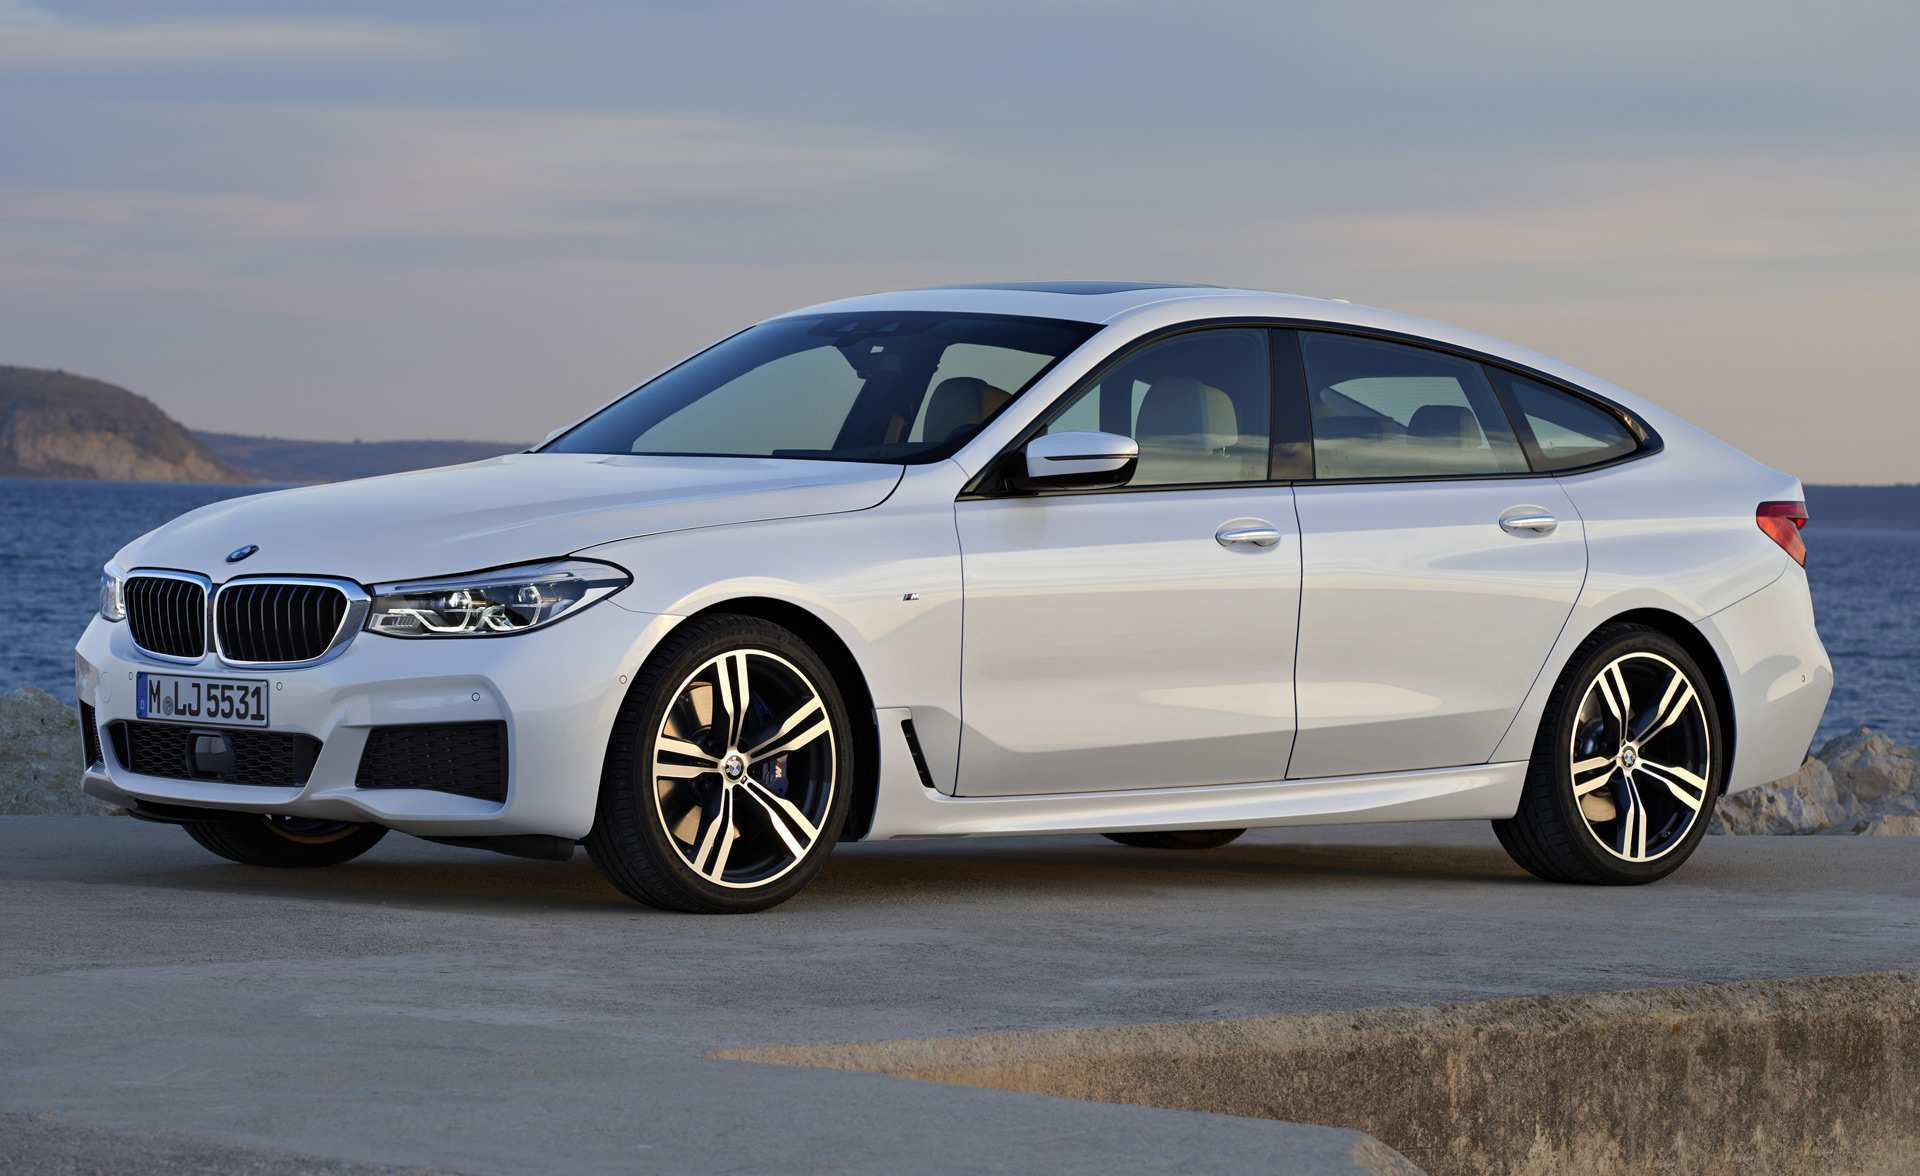 71 The Best 2019 BMW 6 Review And Release Date